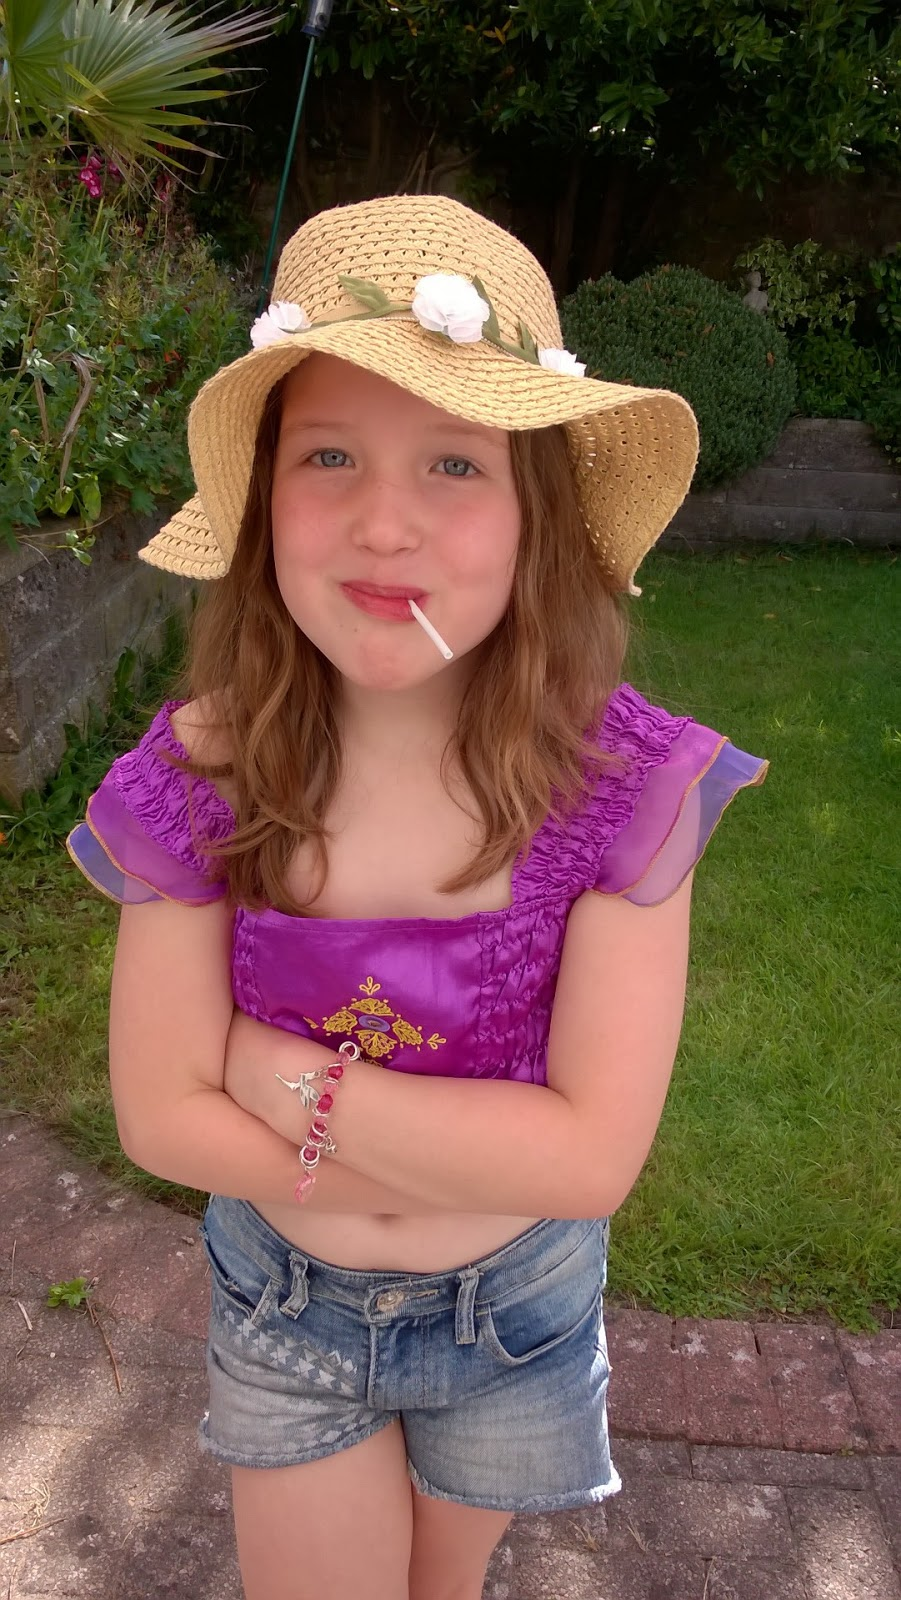 left out on a playdate - Caitlin in the garden wearing a floppy sunhat